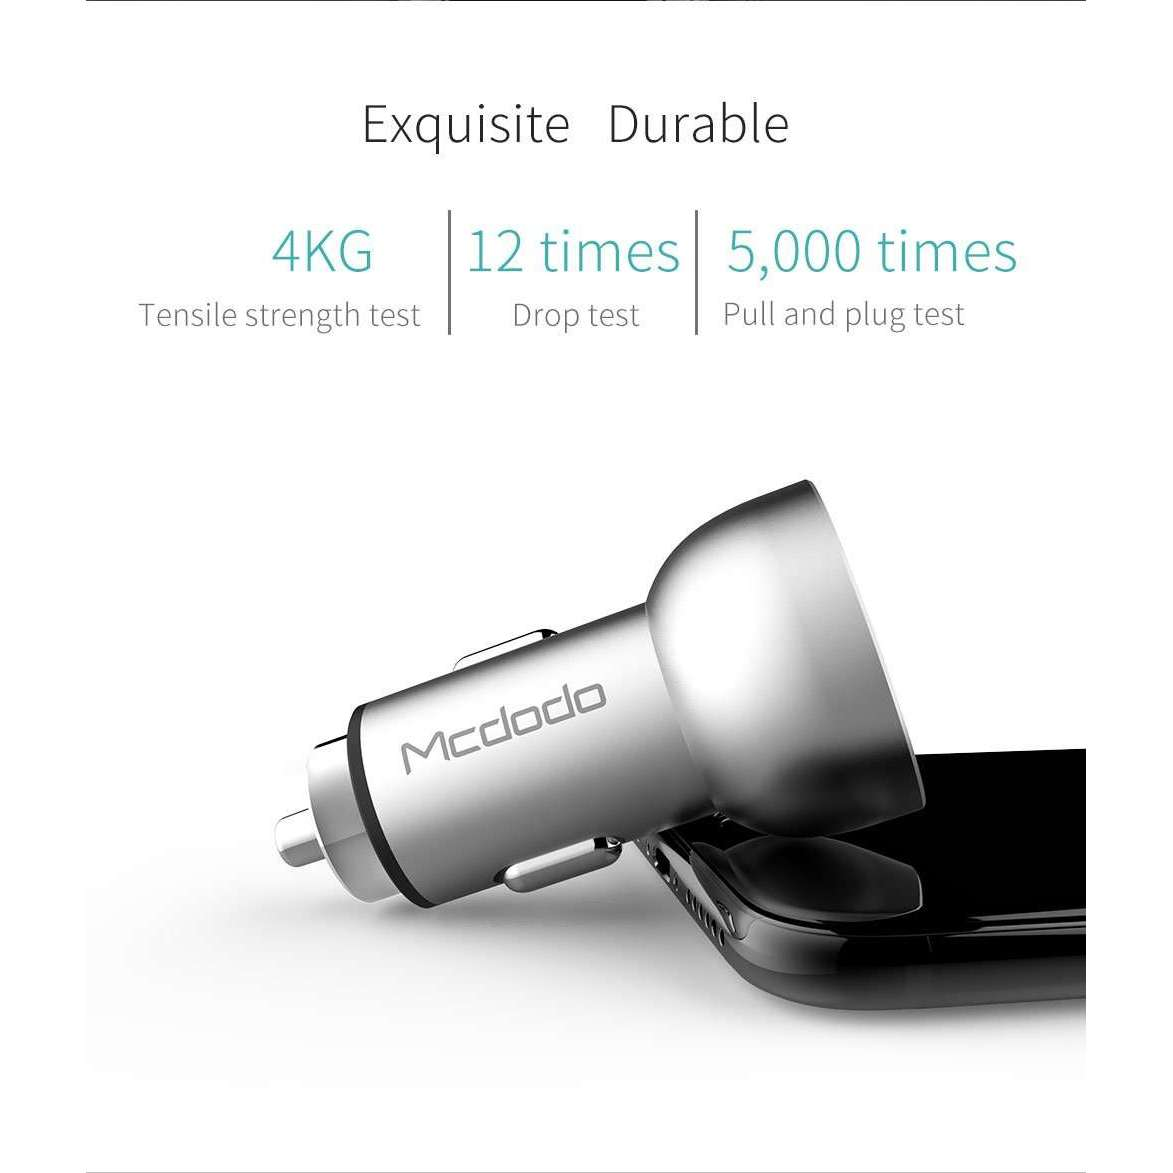 Mcdodo Car Charger | Digital Display | Dual USB Ports | 5V, 3.4A